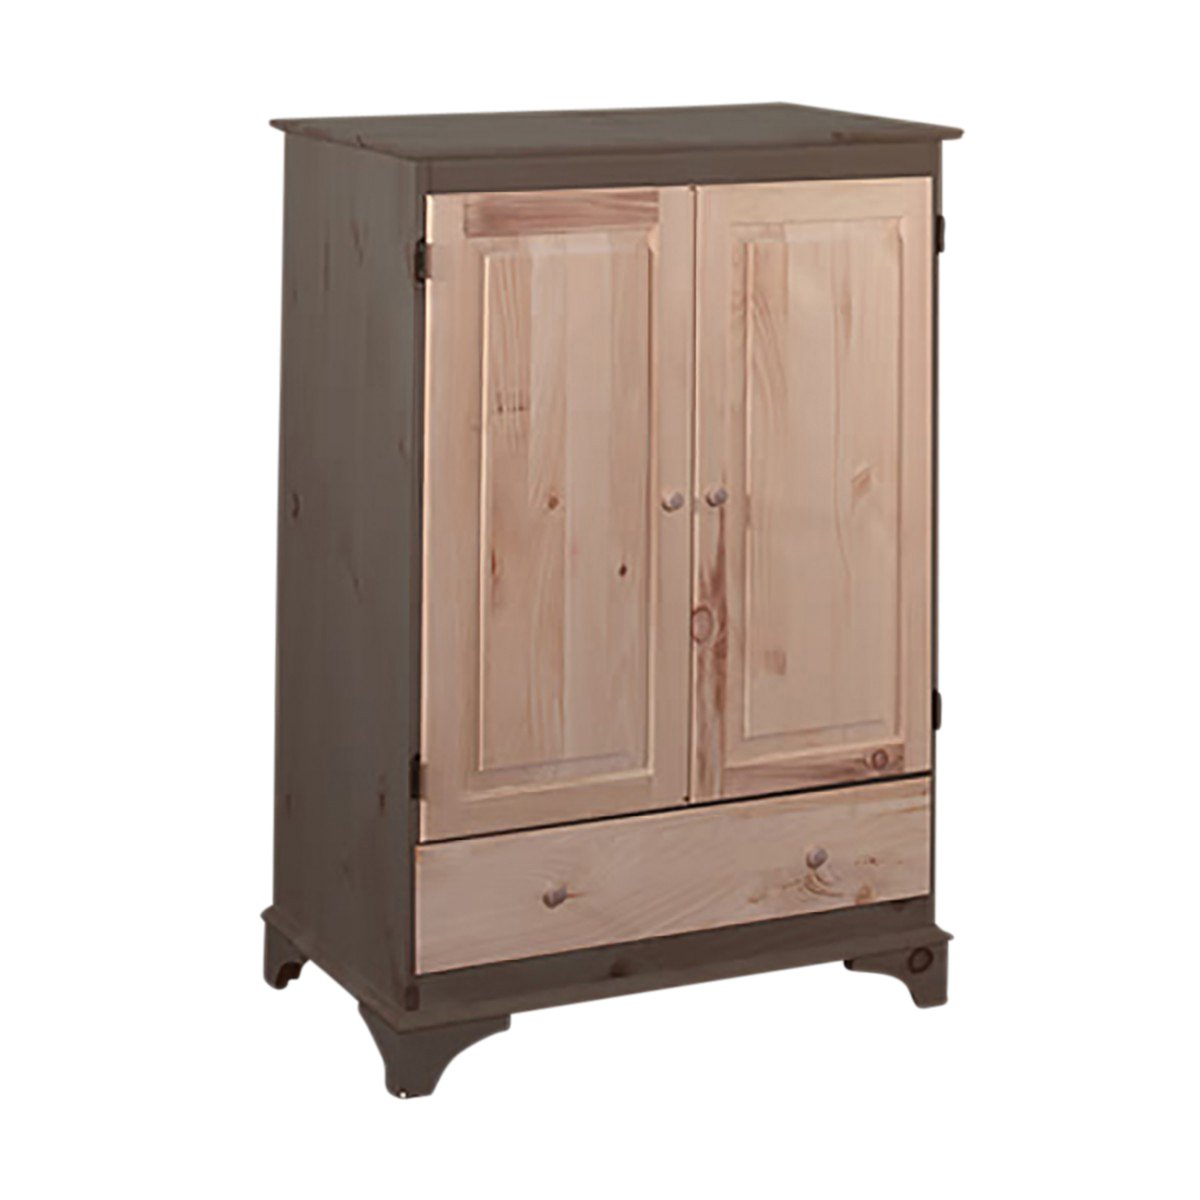 Video Cabinets UnFinished Pine Hadley Video Cabinet Kit